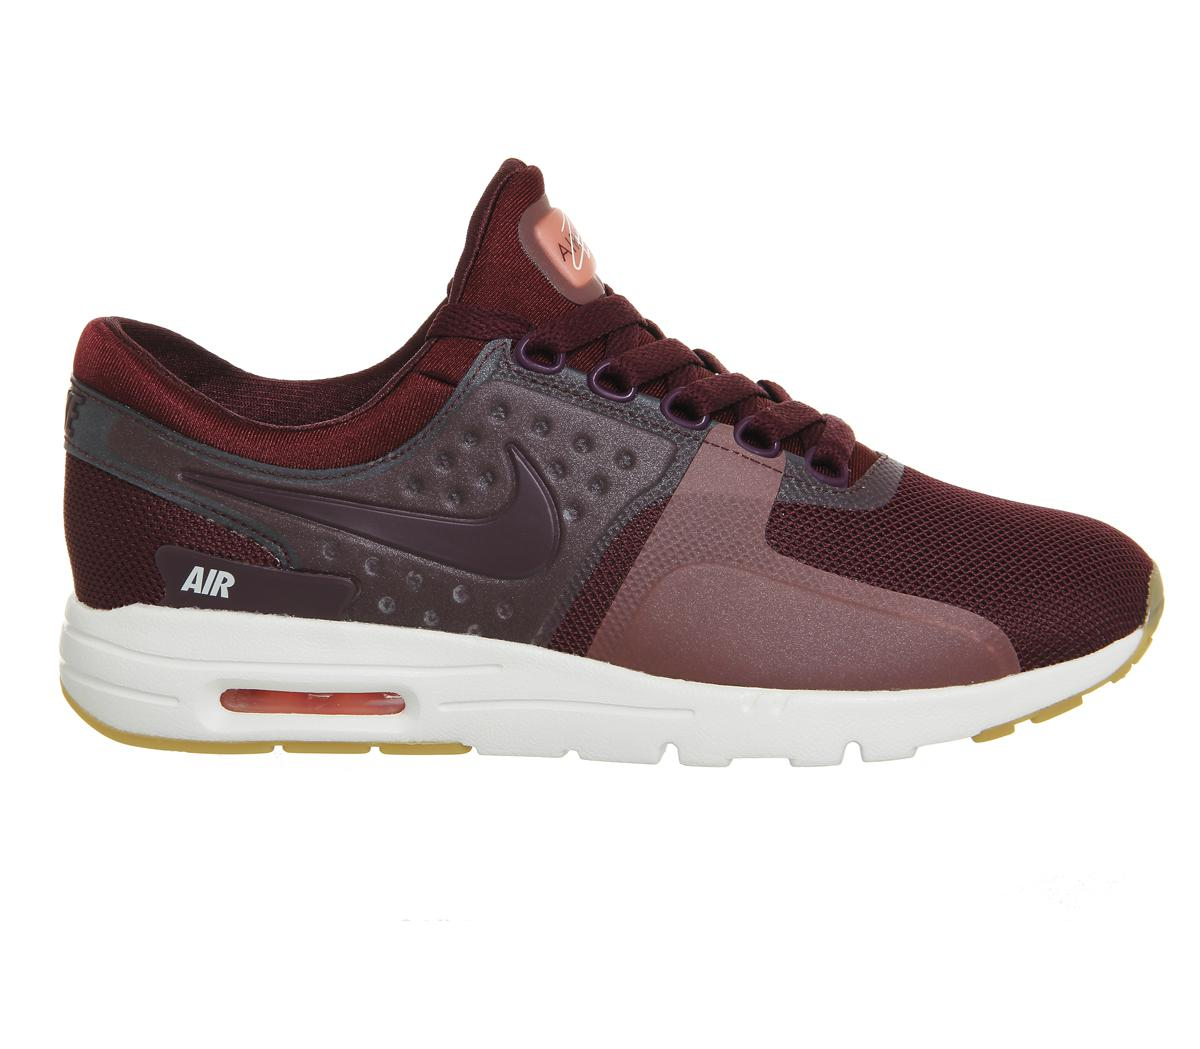 84fdccbca2 sale air max zero essential black mens 22c0f 7576a; discount gallery.  previously sold at offspring selfridges womens nike air max 9d388 953a3